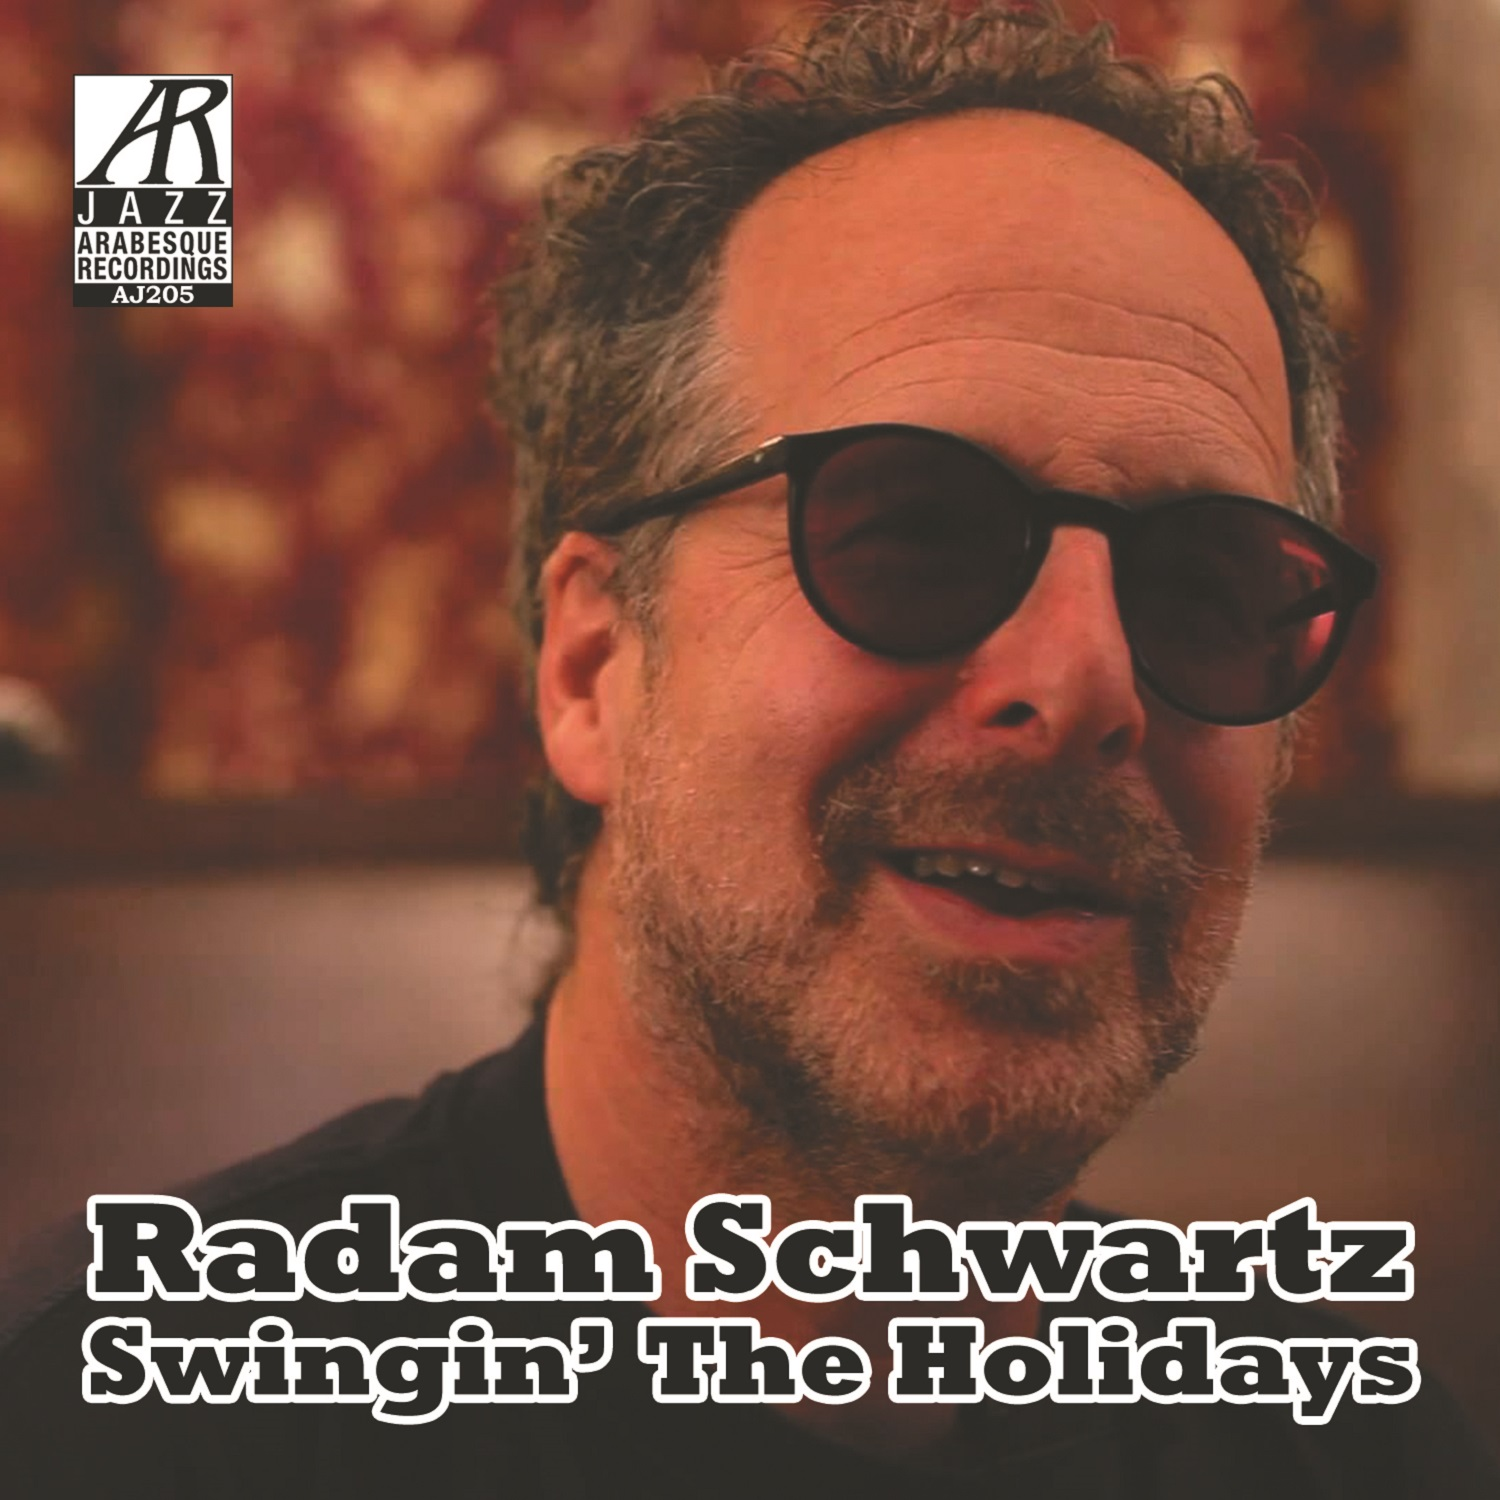 AJ0205  | Swingin' the Holidays |  Radam Schwartz